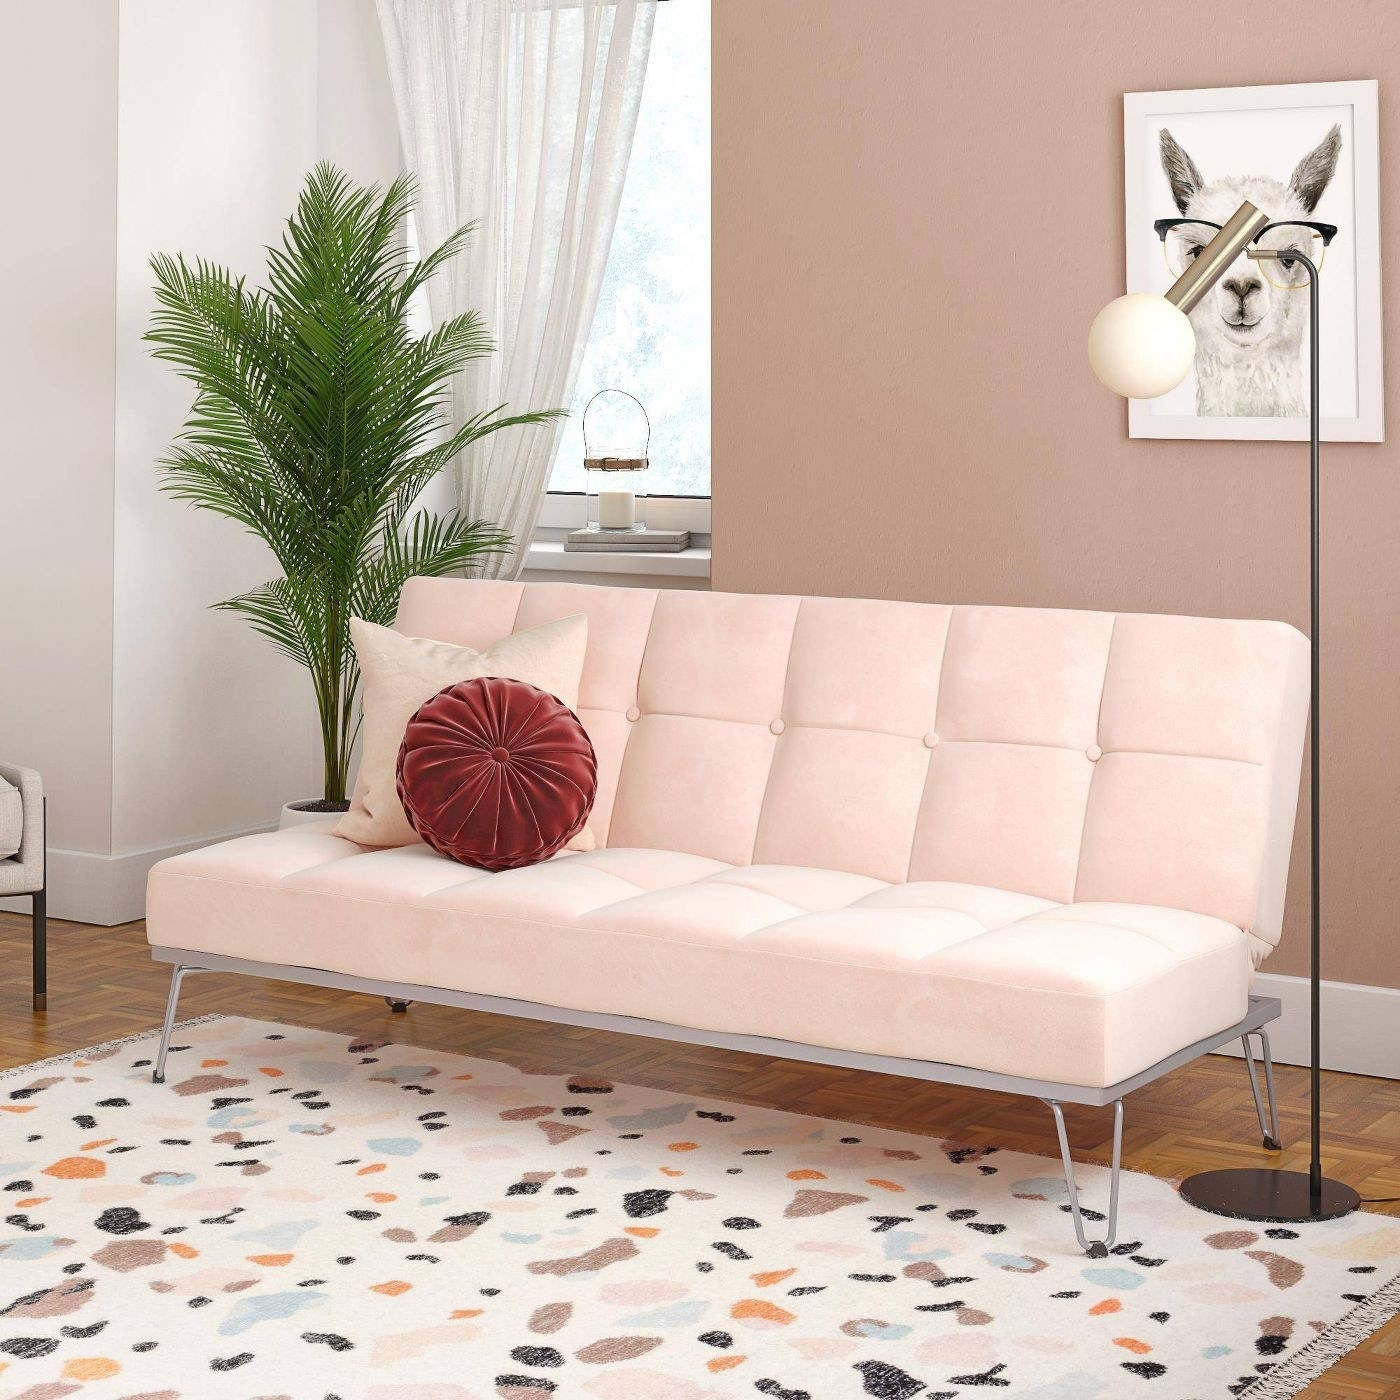 A pink couch in a home